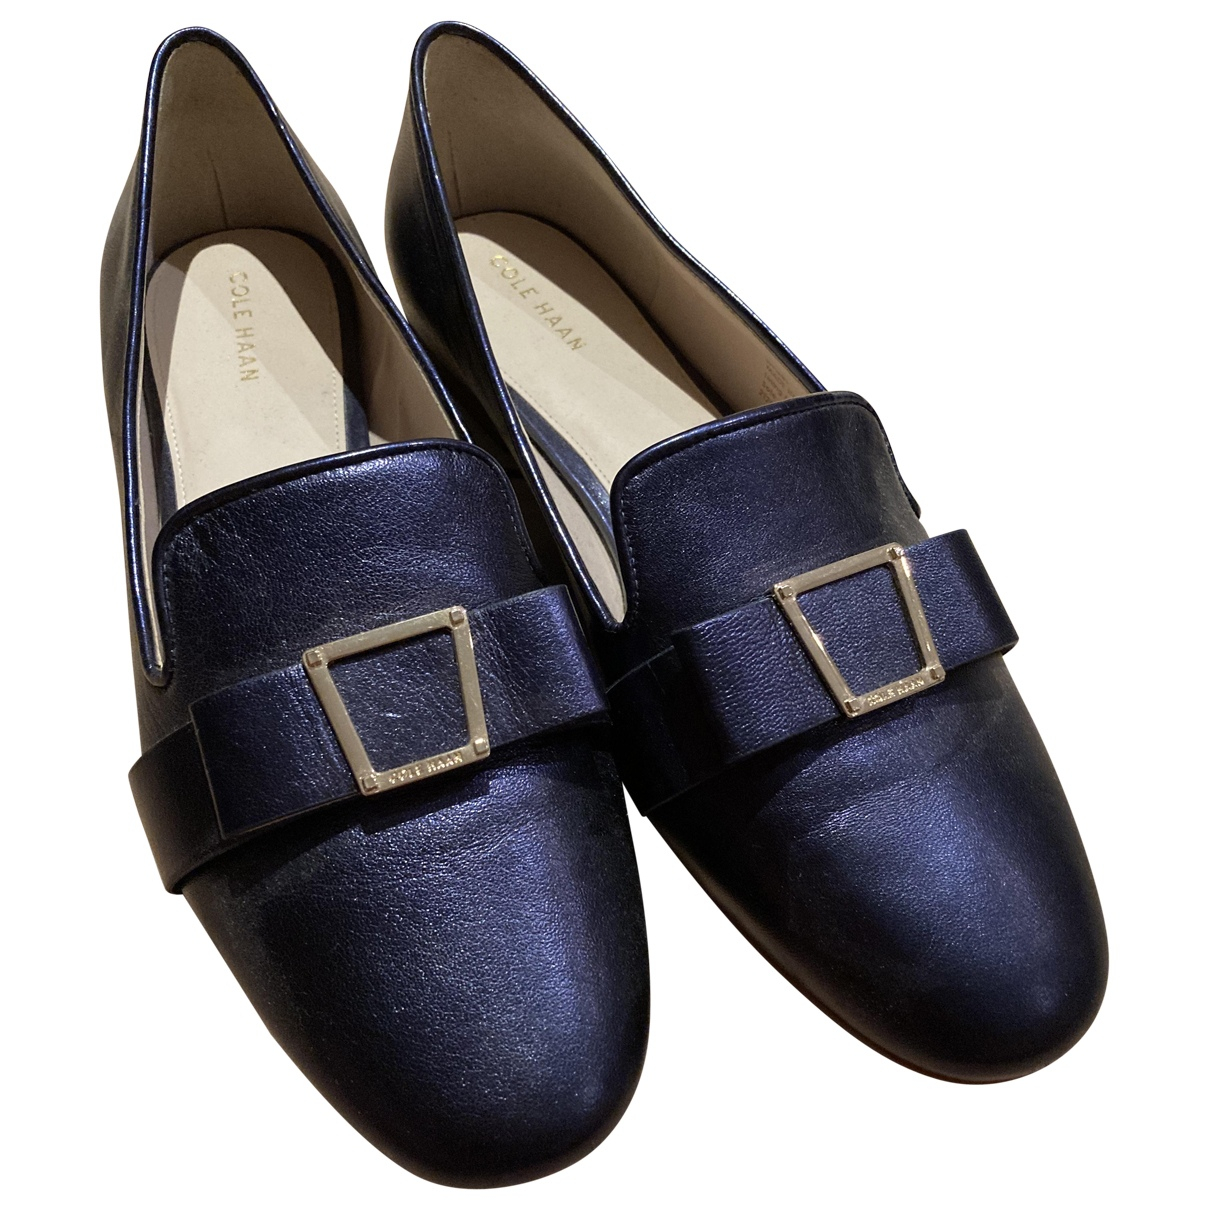 Cole Haan N Purple Patent leather Flats for Women 9 US